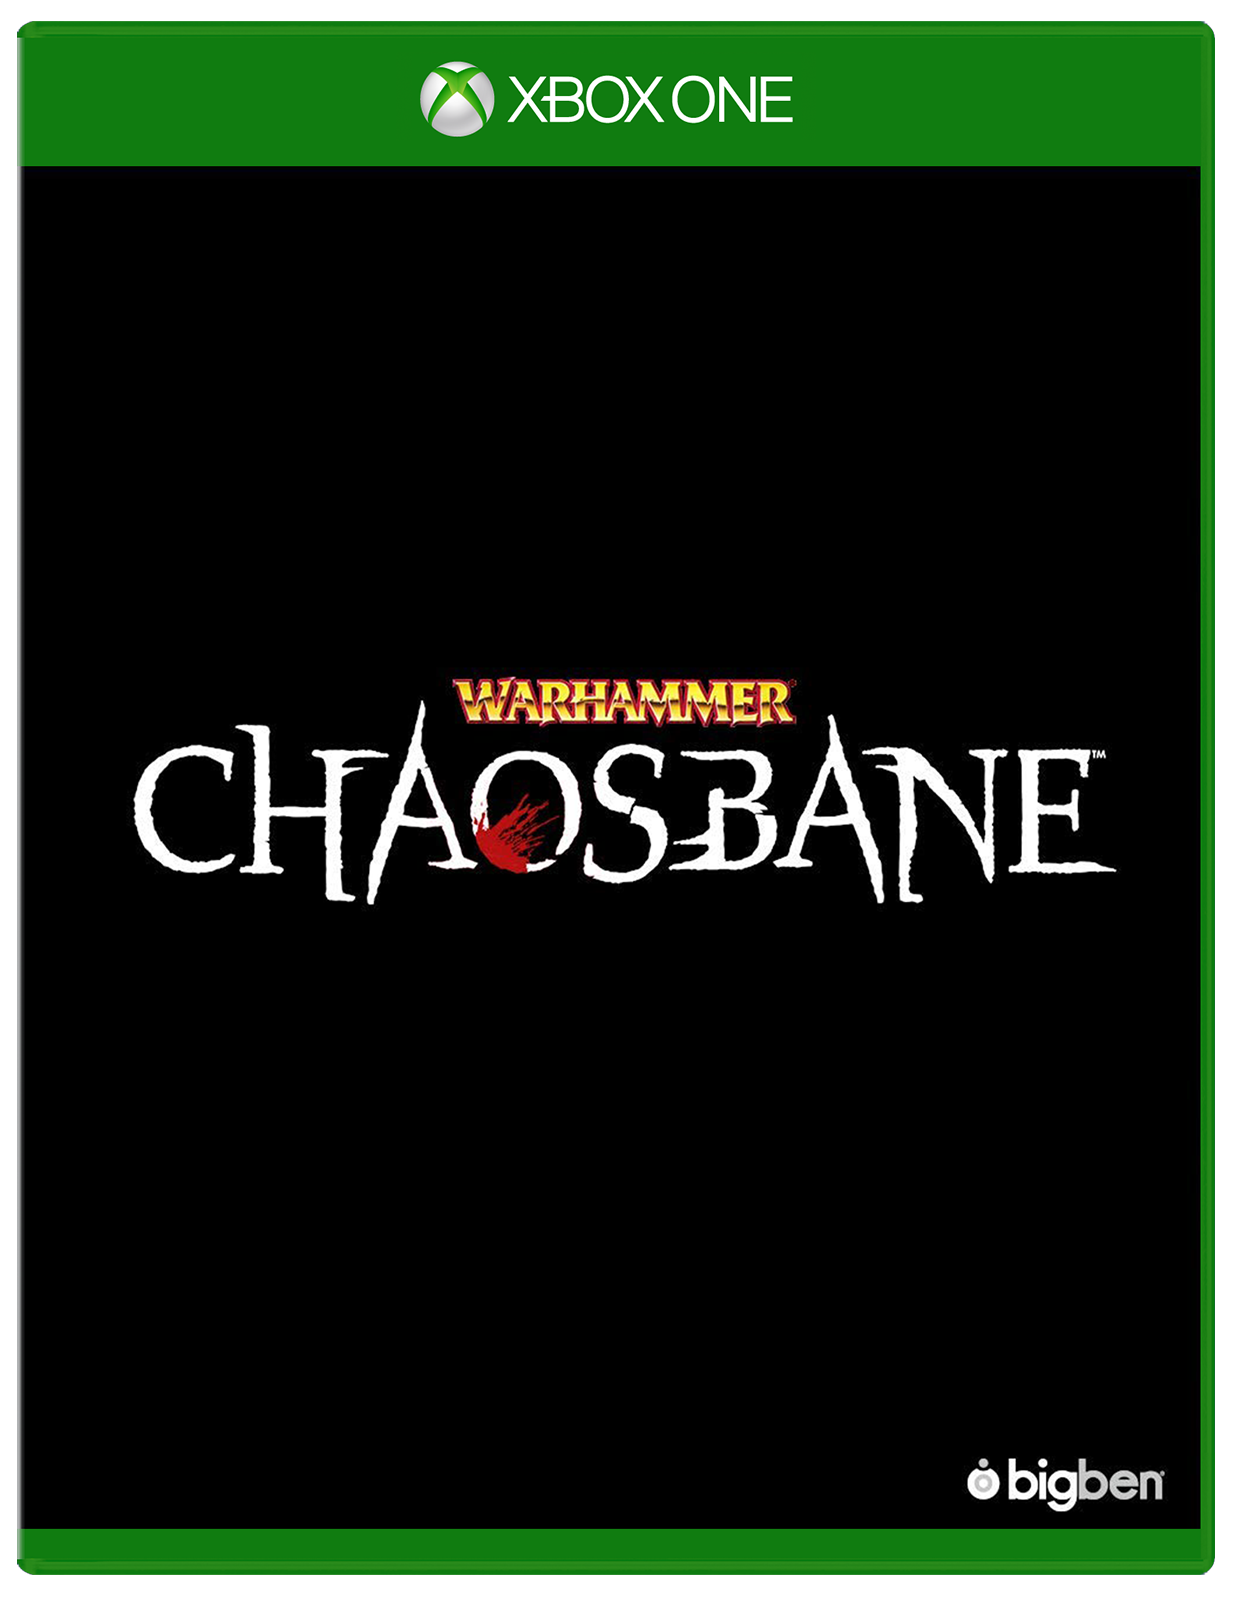 Cover of Warhammer: Chaosbane for Xbox One